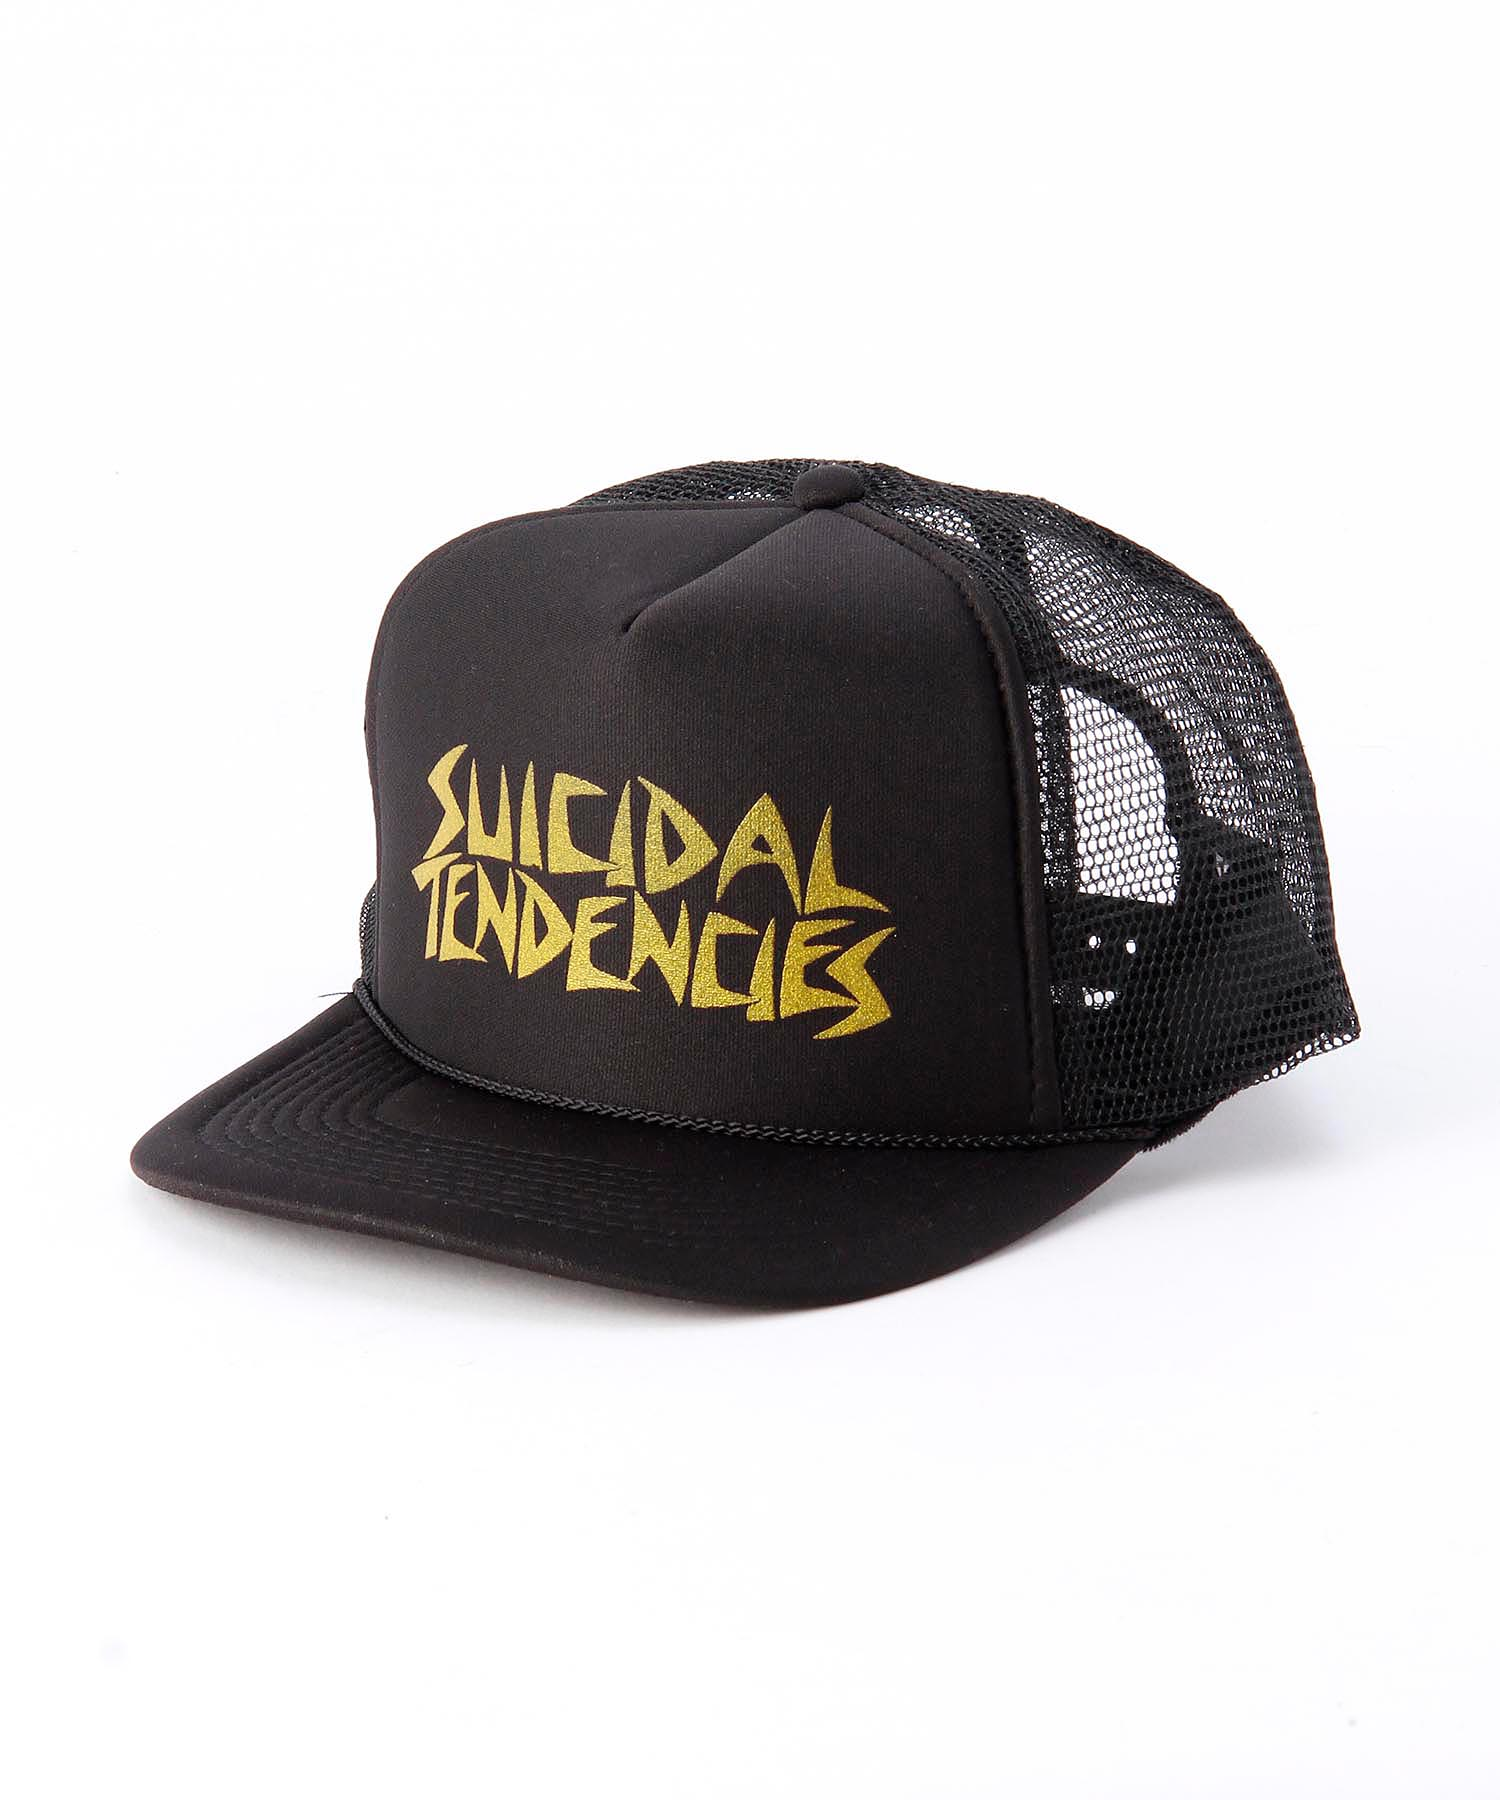 SUICIDAL TENDENCIES Flip Hat Gold キャップ